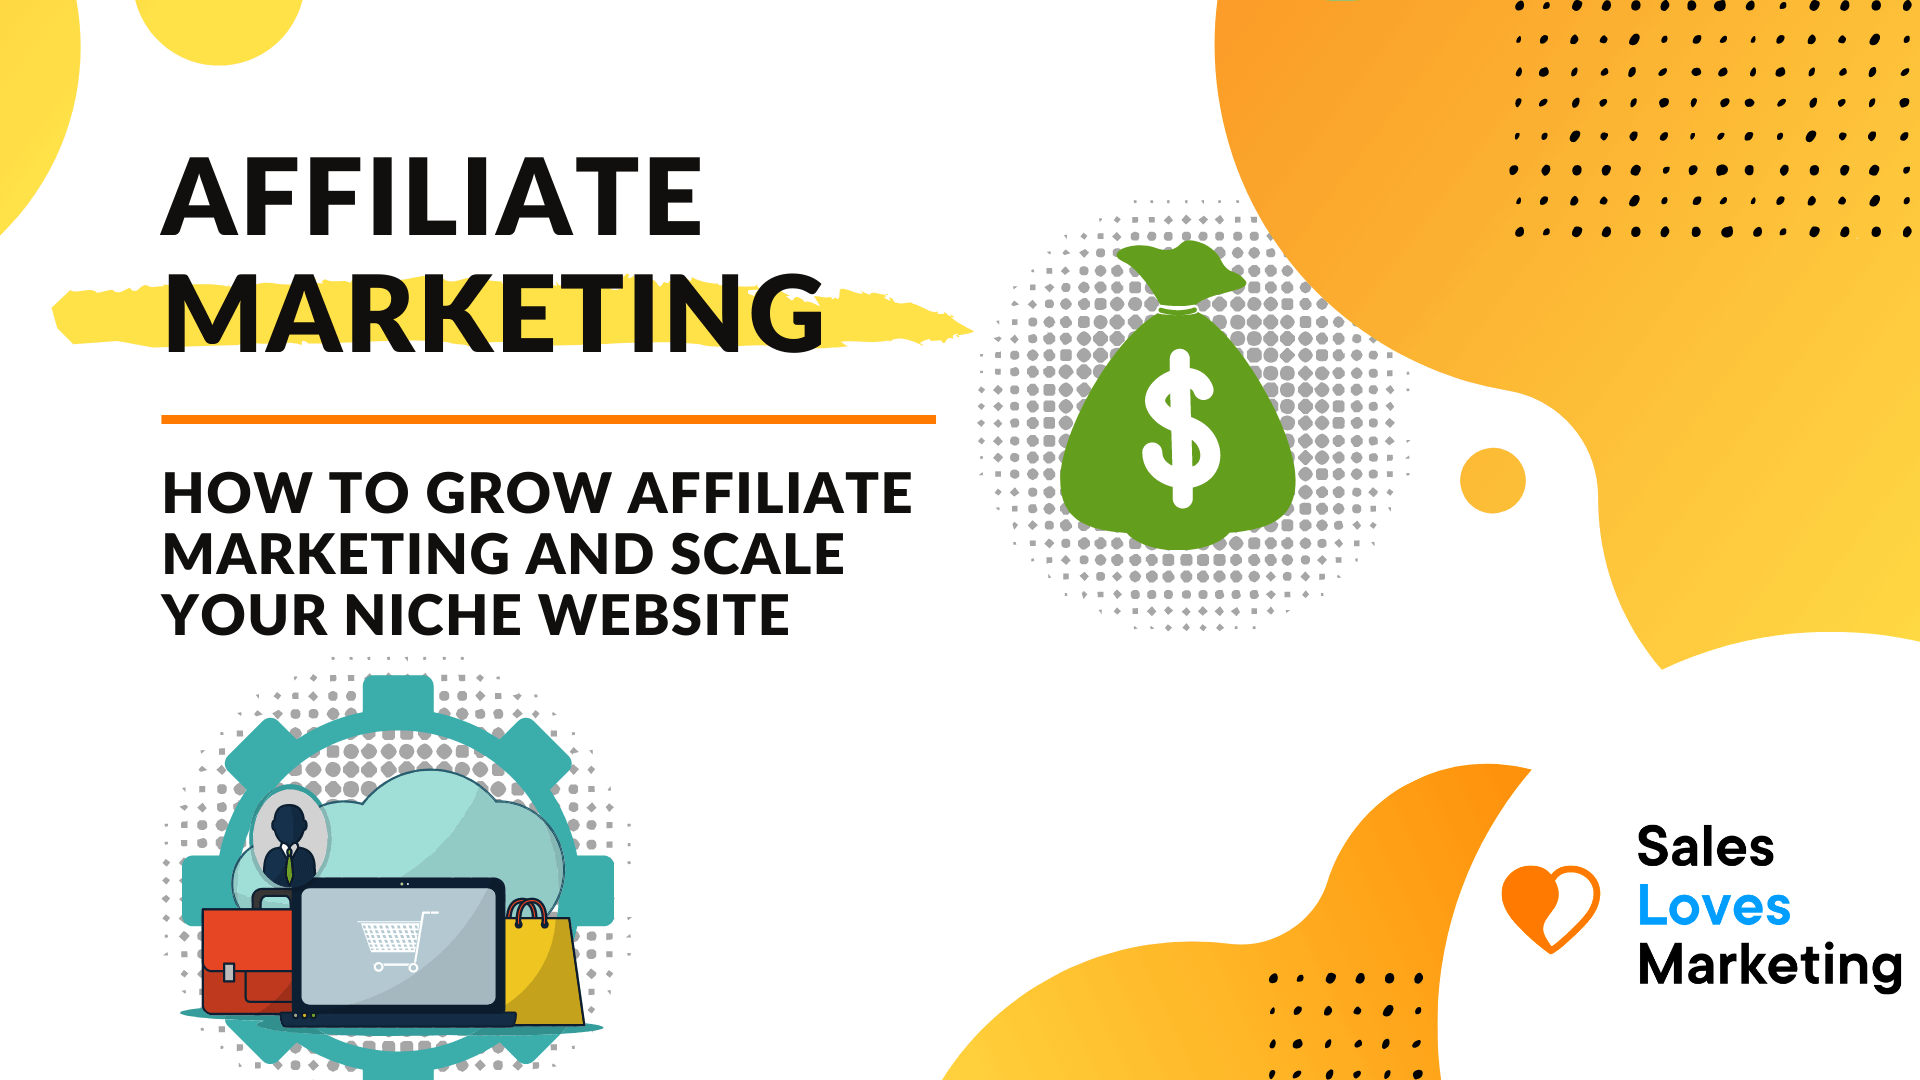 How to grow your affiliate marketing for you business using project managemebt